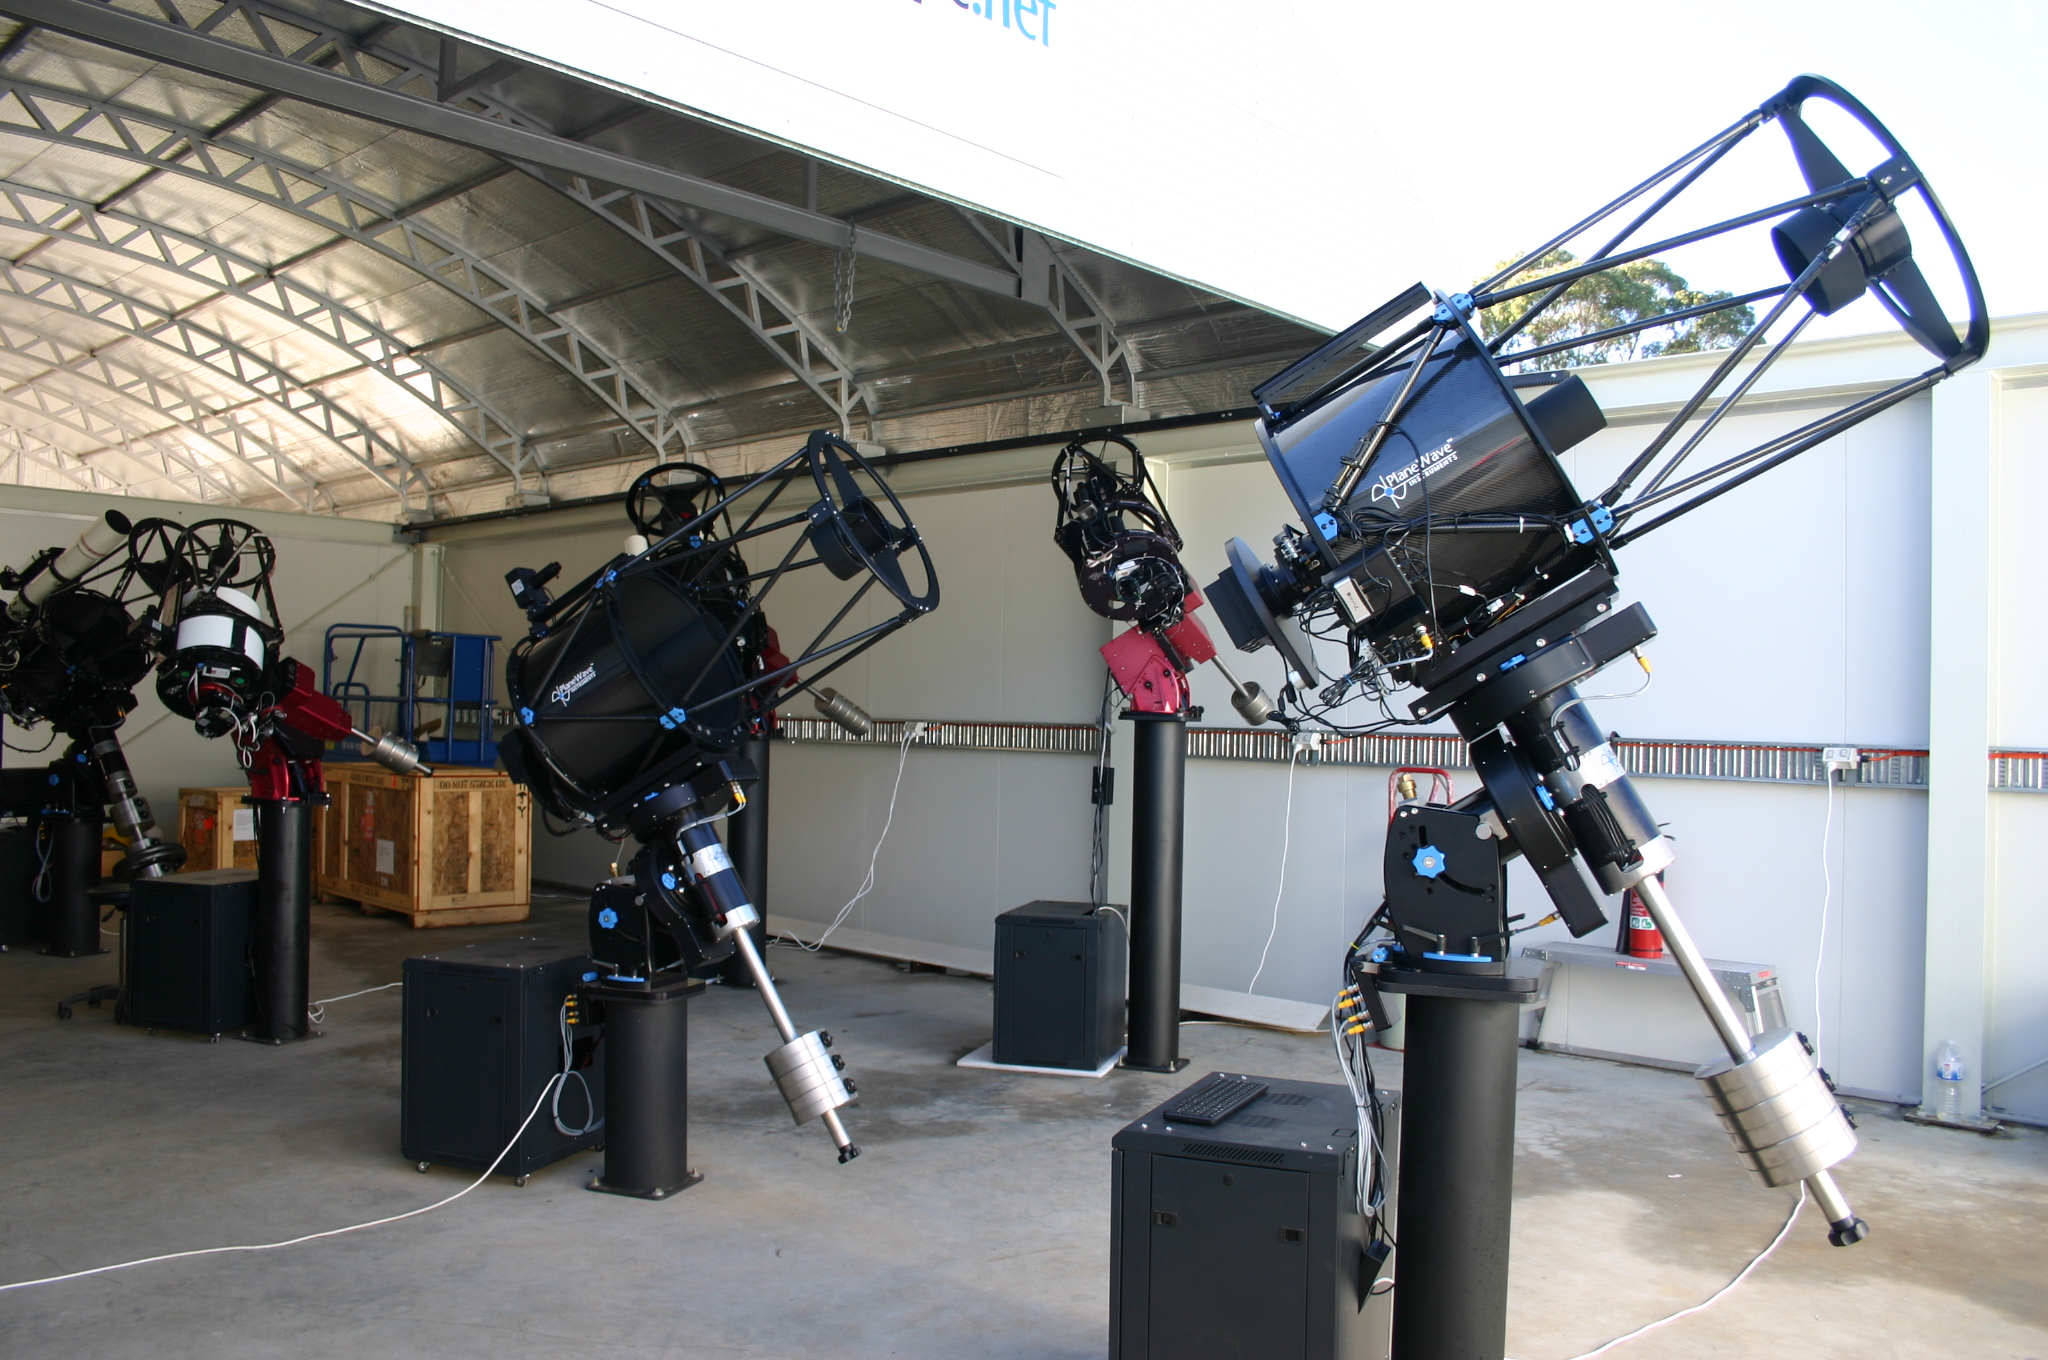 Masterclass B      Using Remote Telescopes for Imaging from Anywhere      Cost - US$200